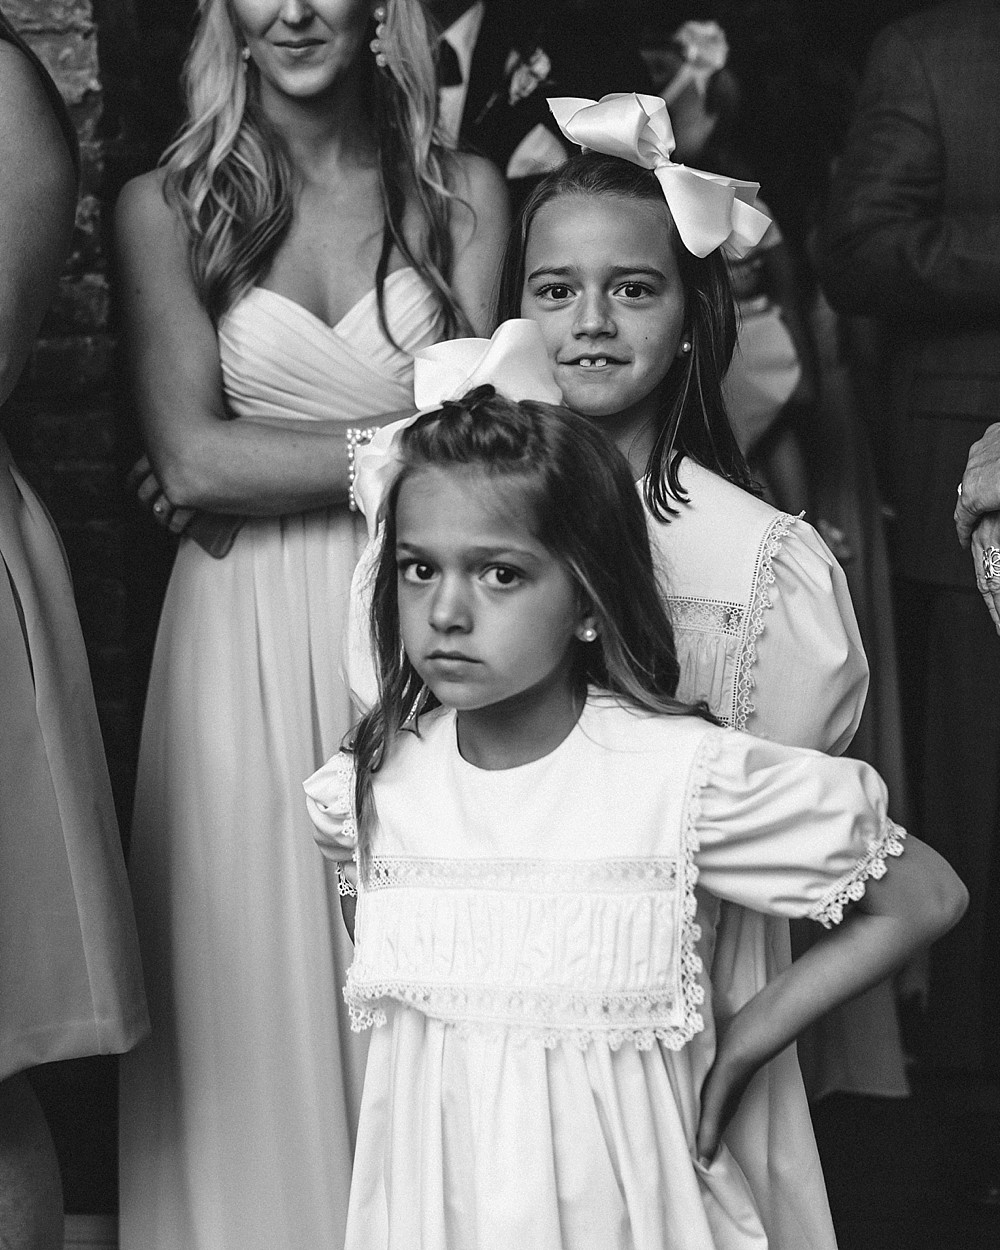 The serious flower girl, black and white